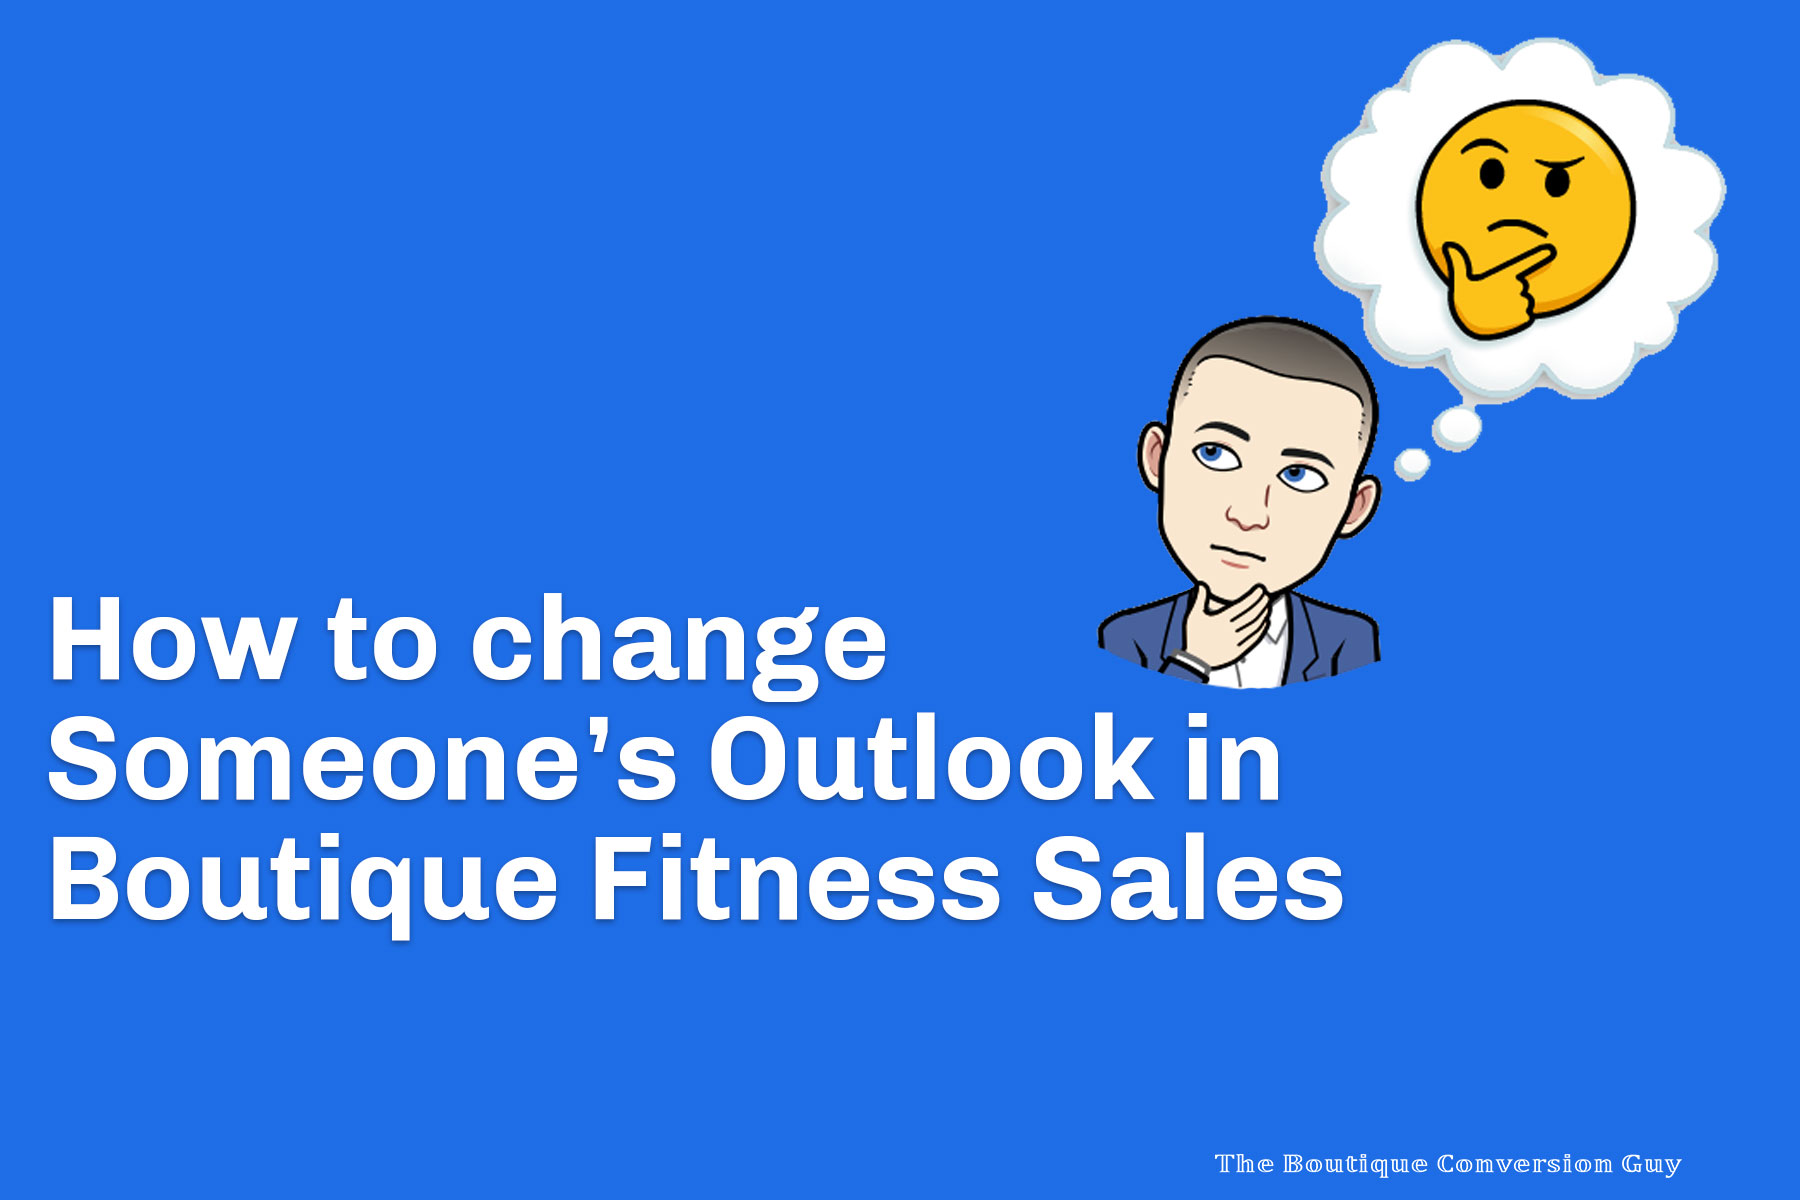 How to change outlook in Boutique Fitness Sales